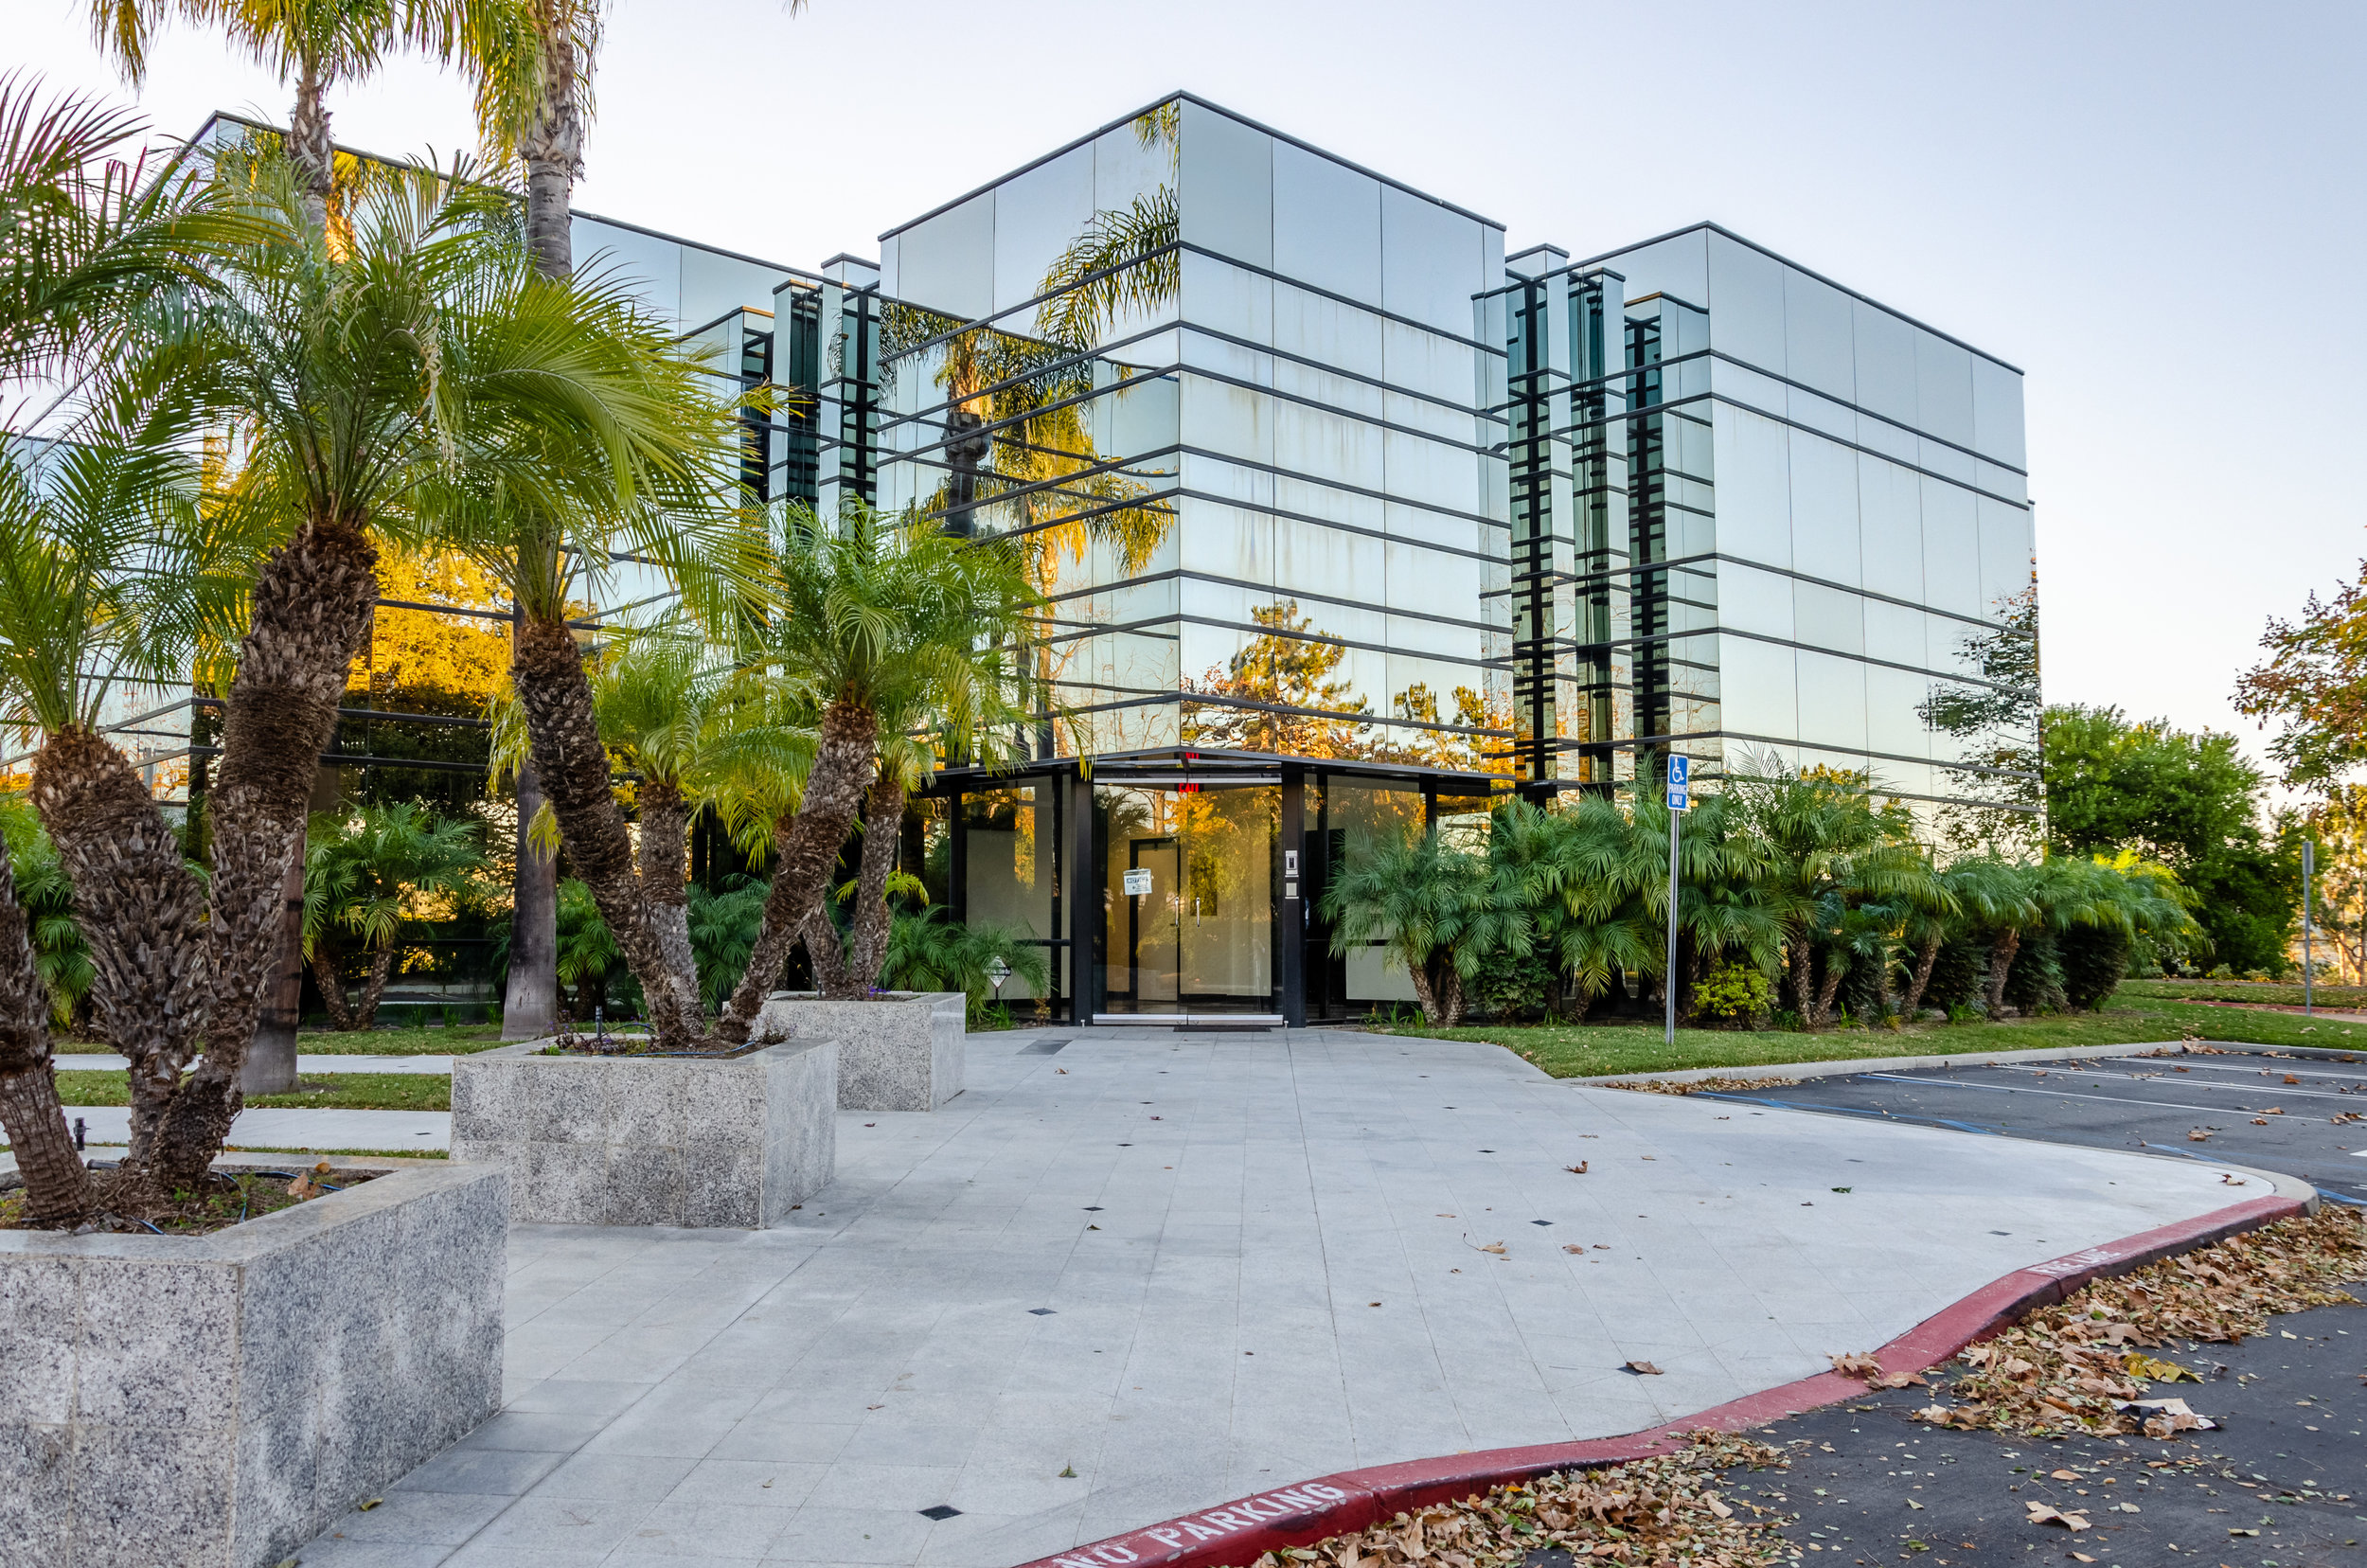 1100 Via Callejon #C - Warehouse Space For Sublease In Orange County